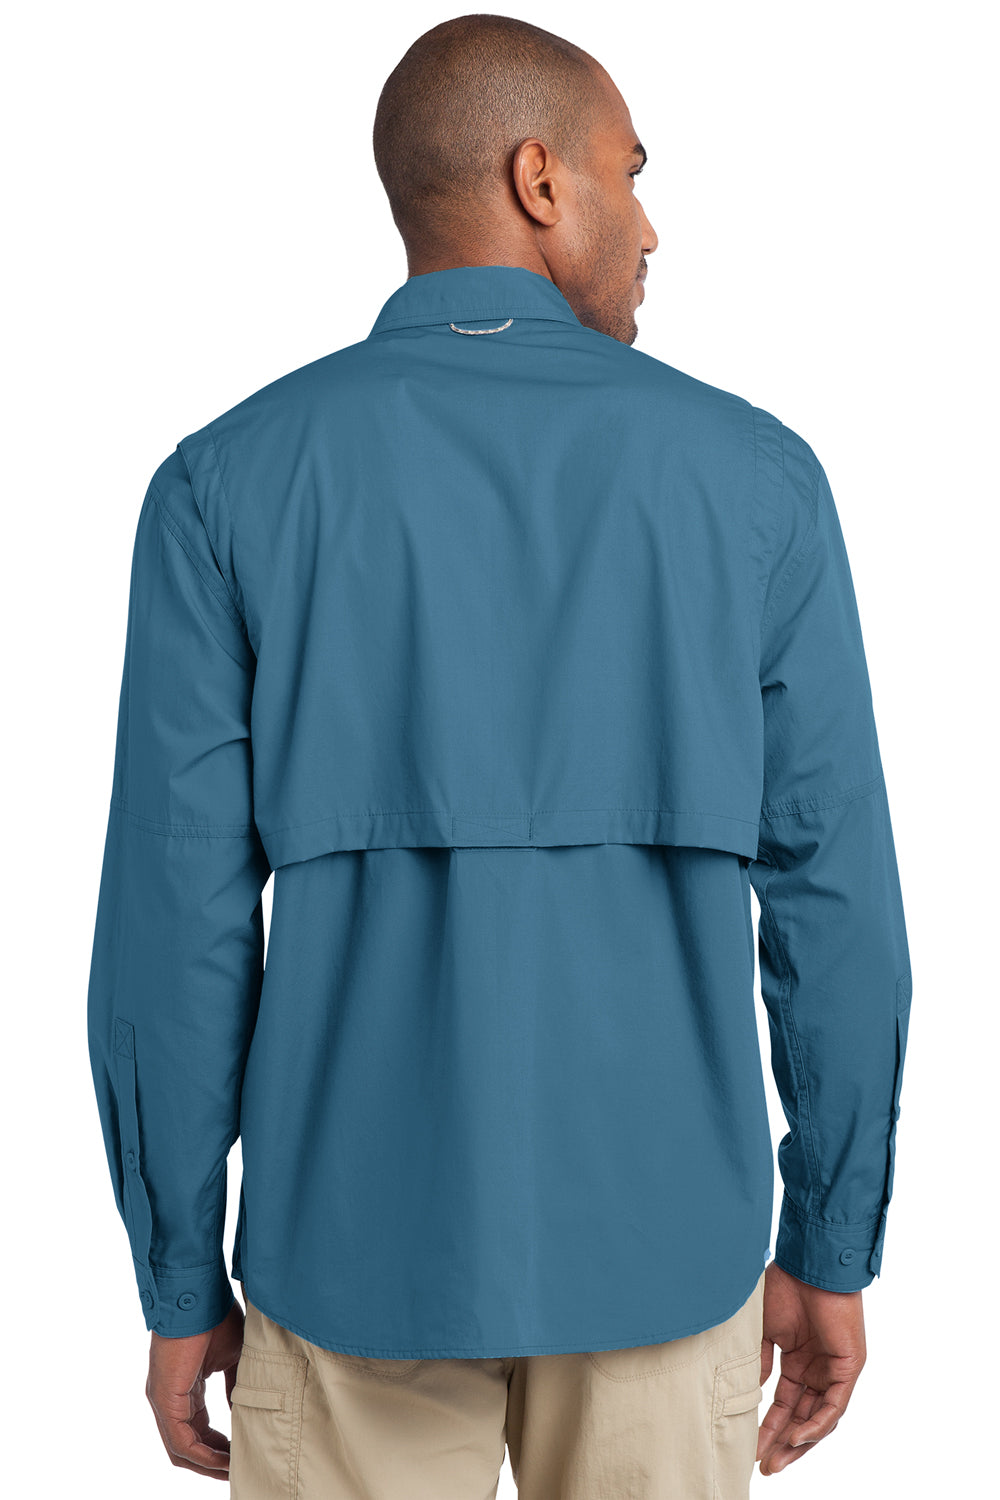 Eddie Bauer EB606 Mens Fishing Long Sleeve Button Down Shirt w/ Double Pockets Blue Gill Back